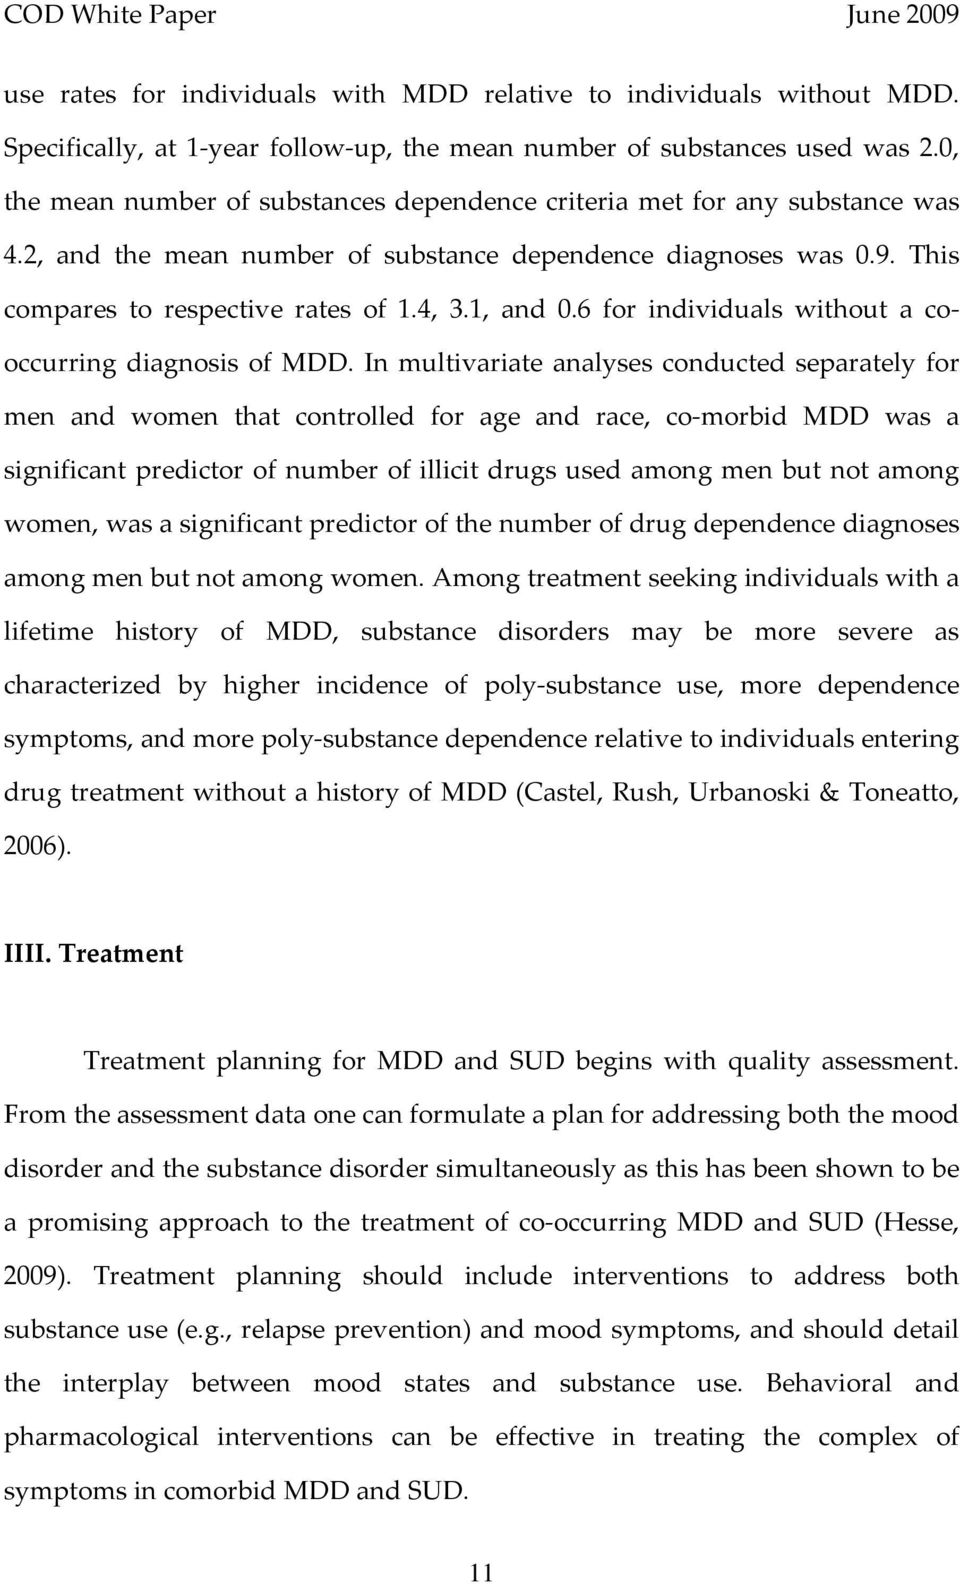 6 for individuals without a cooccurring diagnosis of MDD.